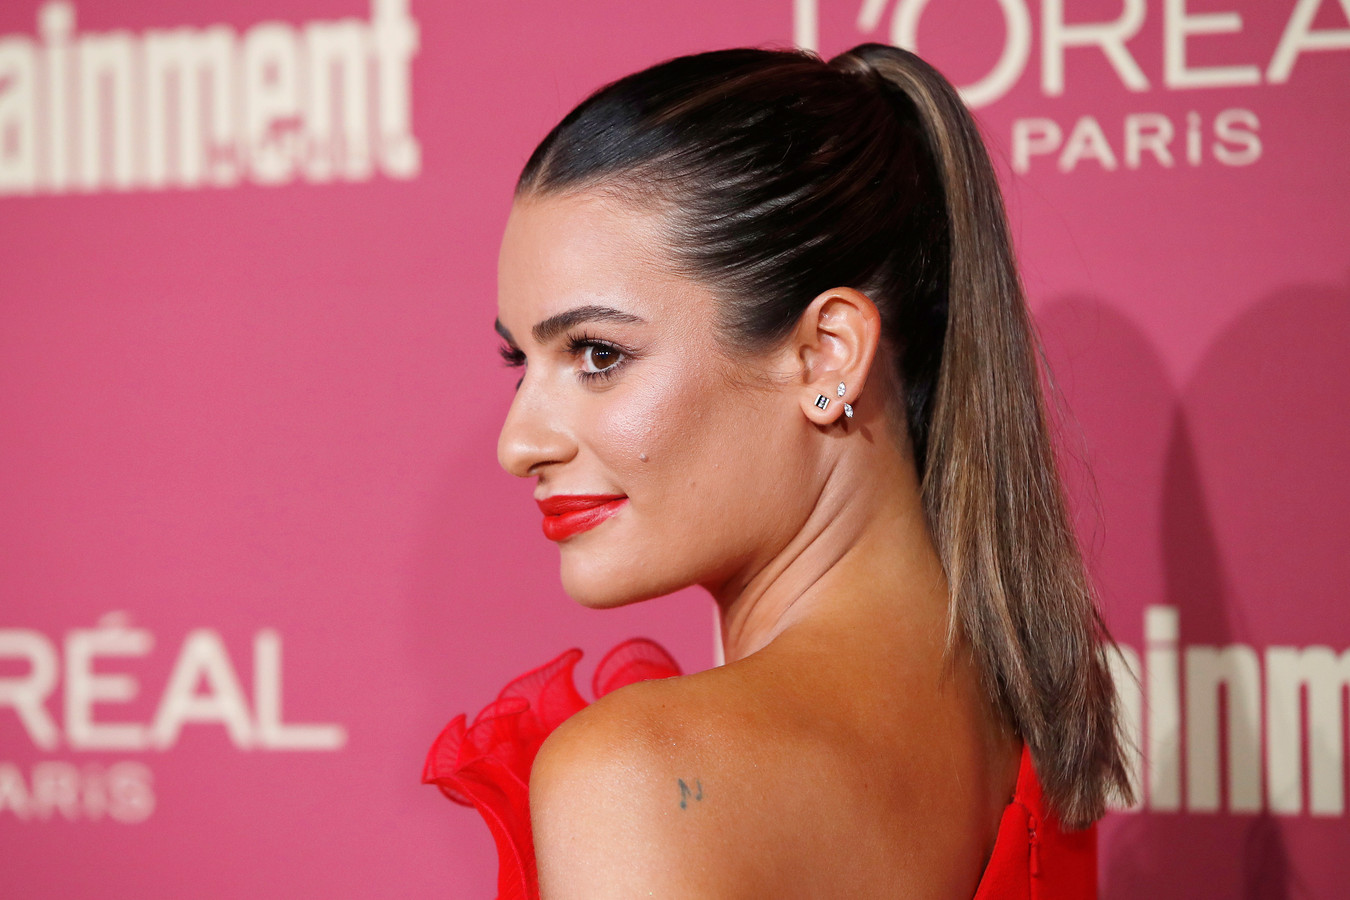 Glee-actrice Lea Michele.